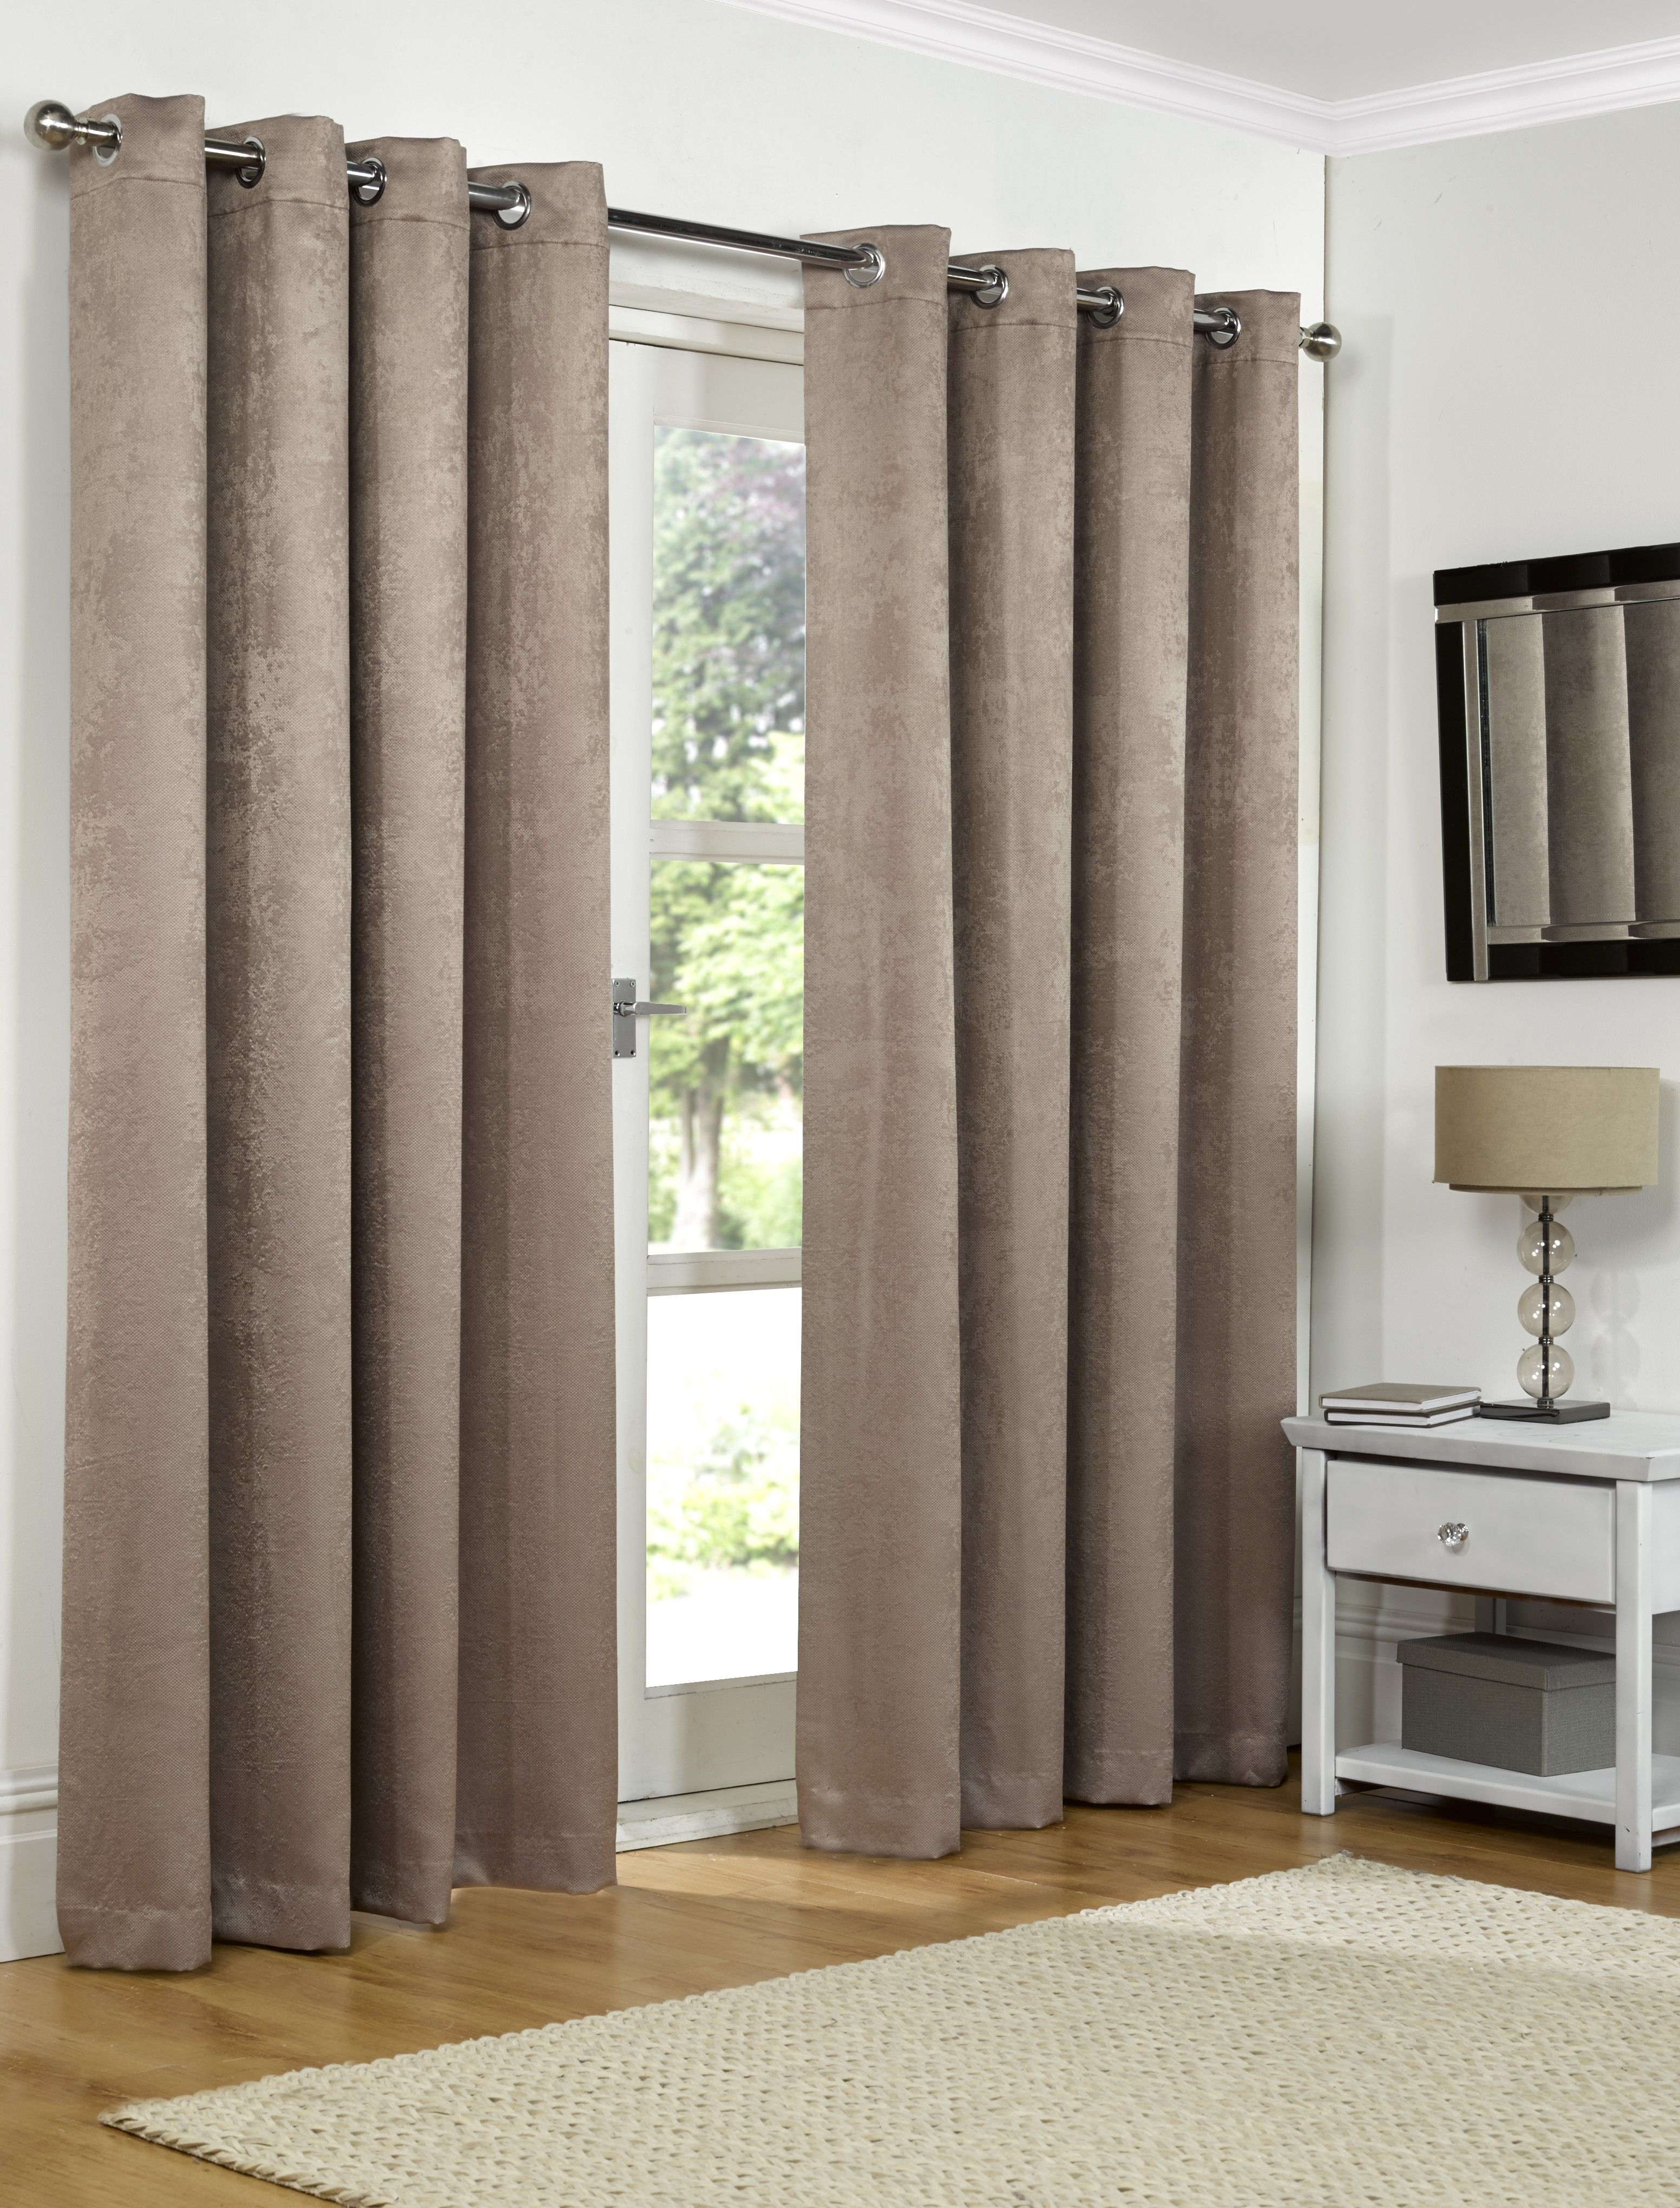 66x54in 168x137cm Mink Brown Blackout Eyelet Curtains